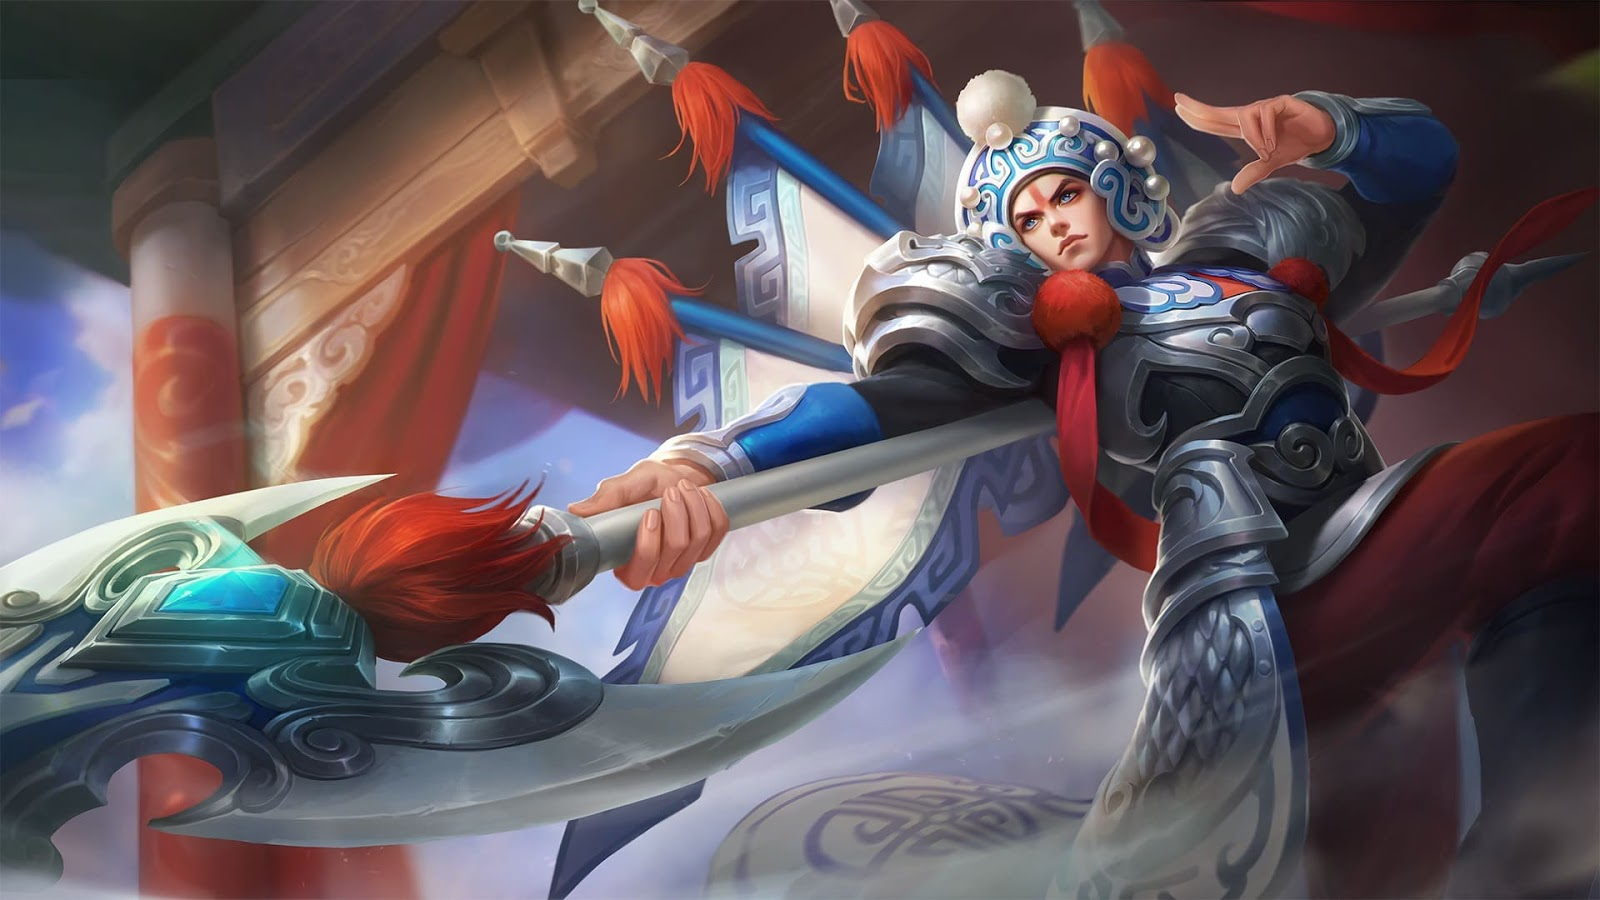 Download Zilong Wallpaper Epic Skin Terupdate